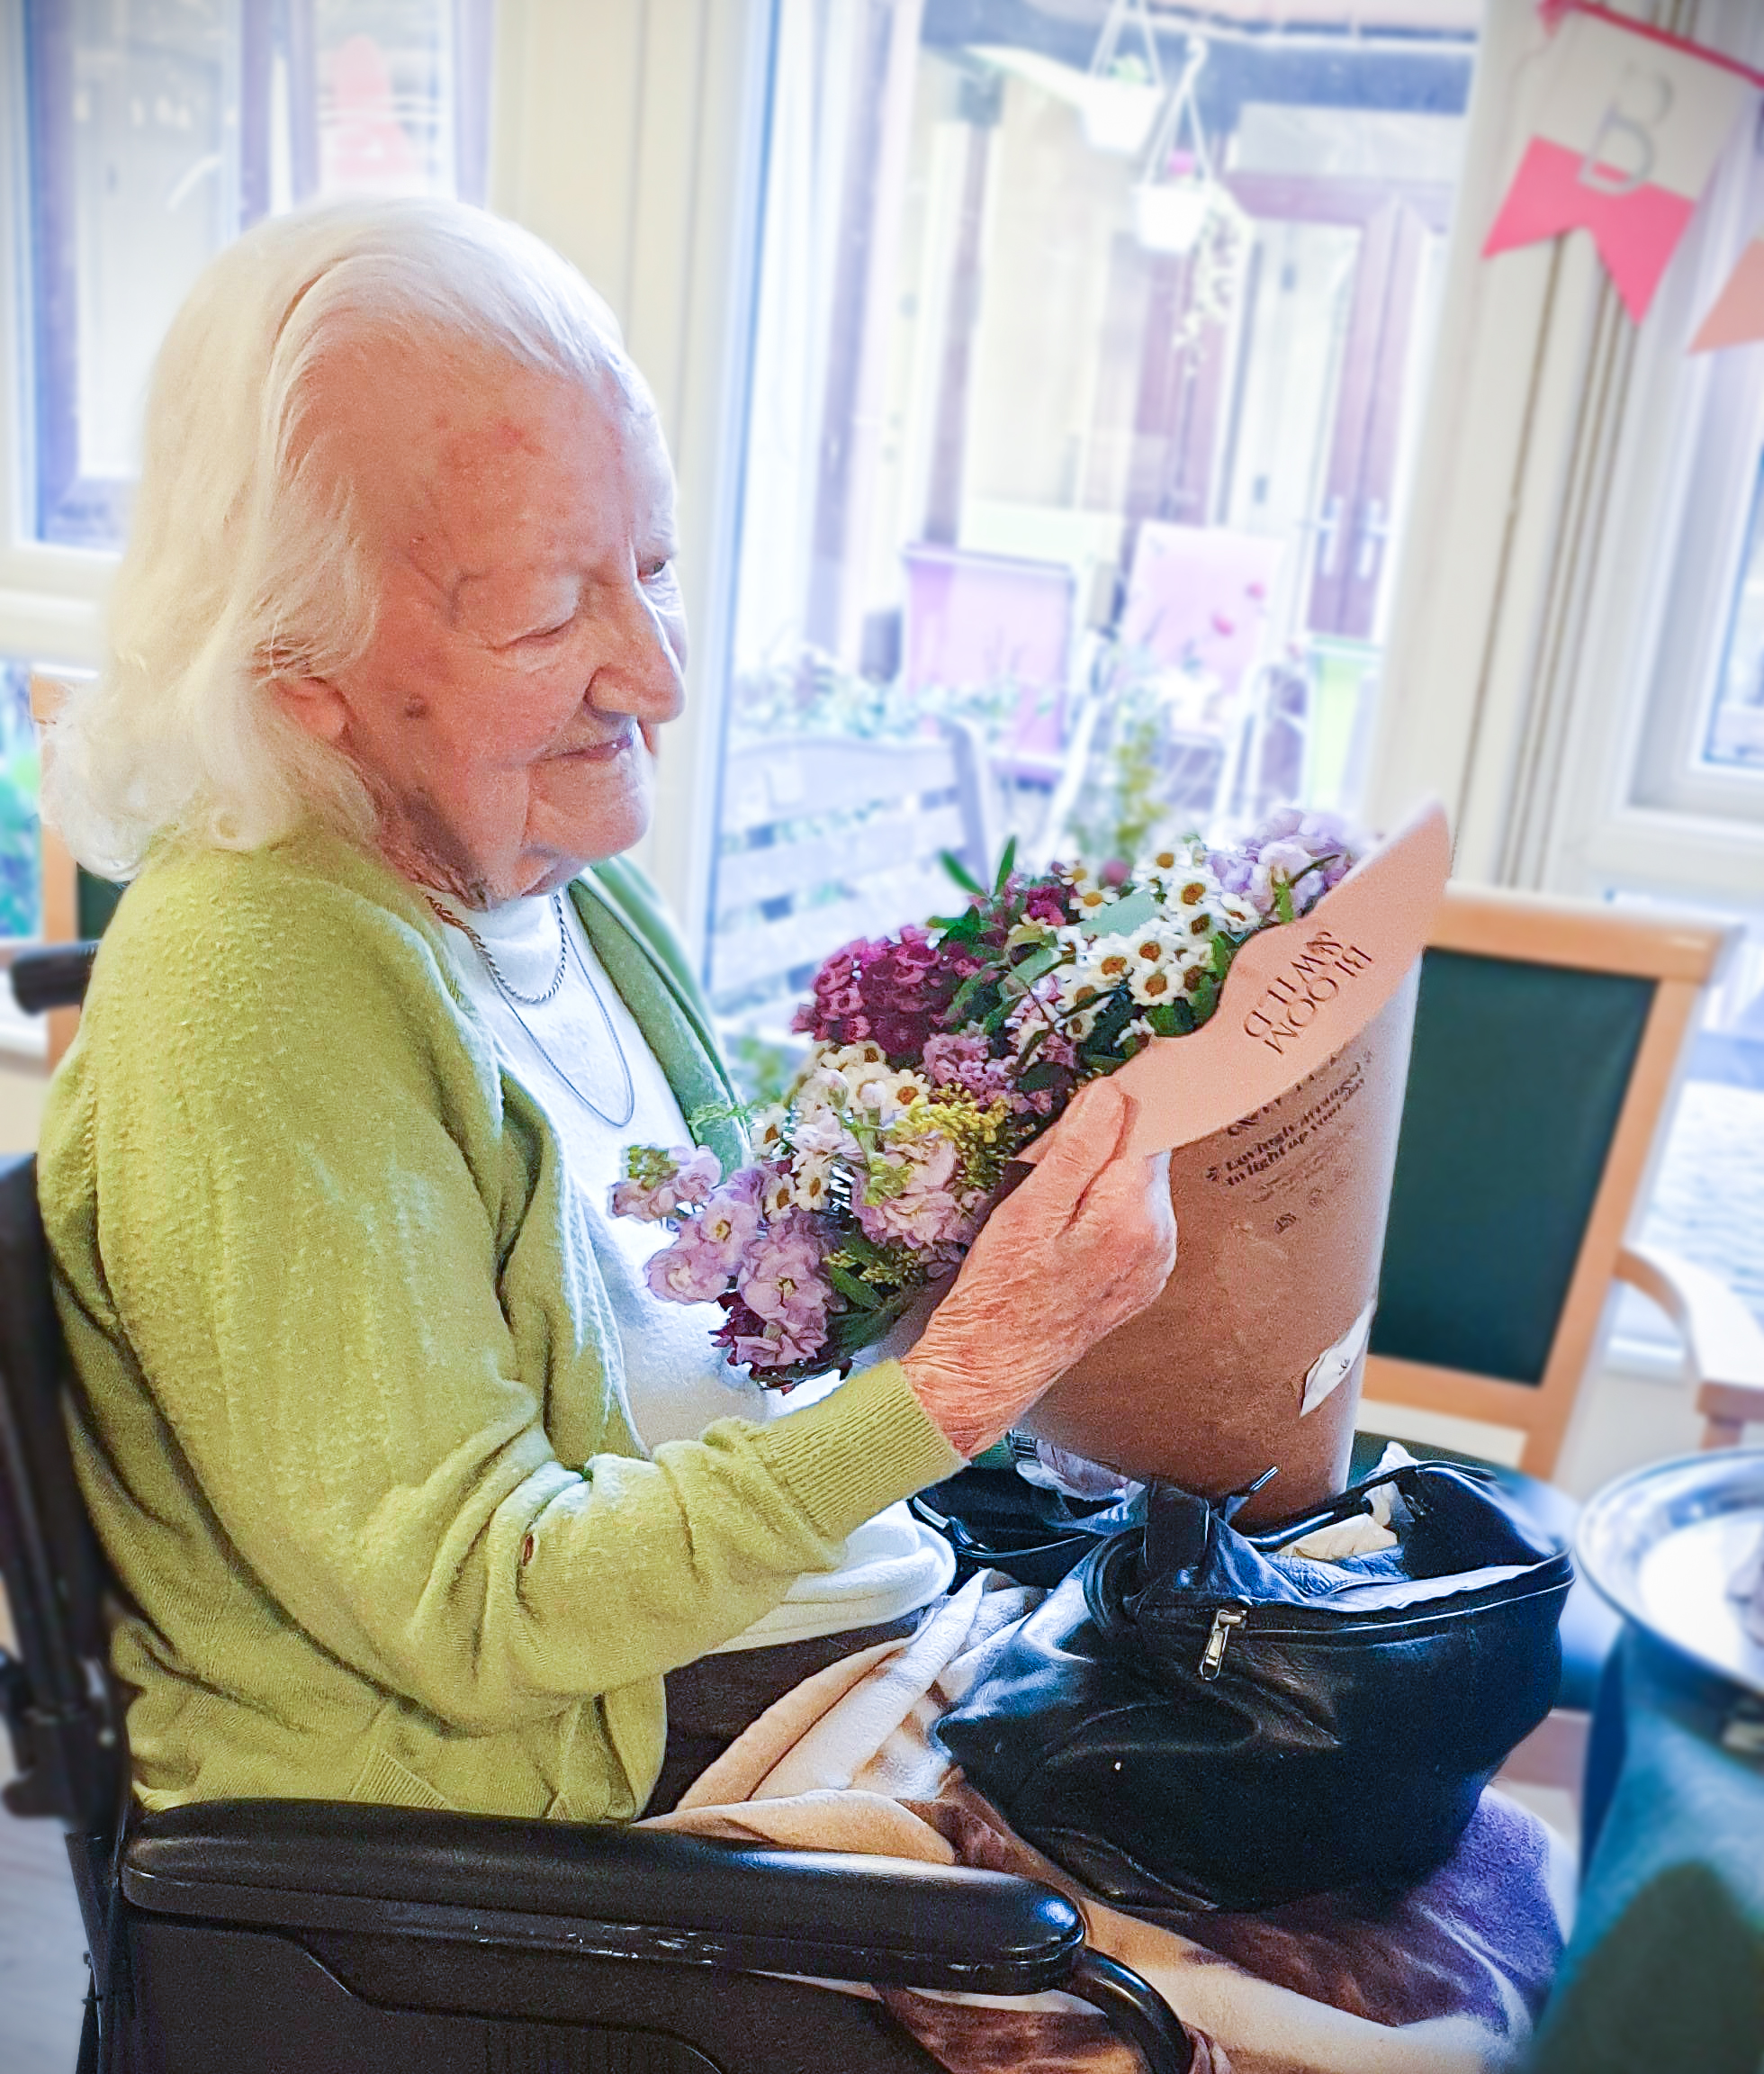 Essex resident Marjorie Wood celebrating her landmark birthday and looking at a bunch of flowers given to her as a gift.